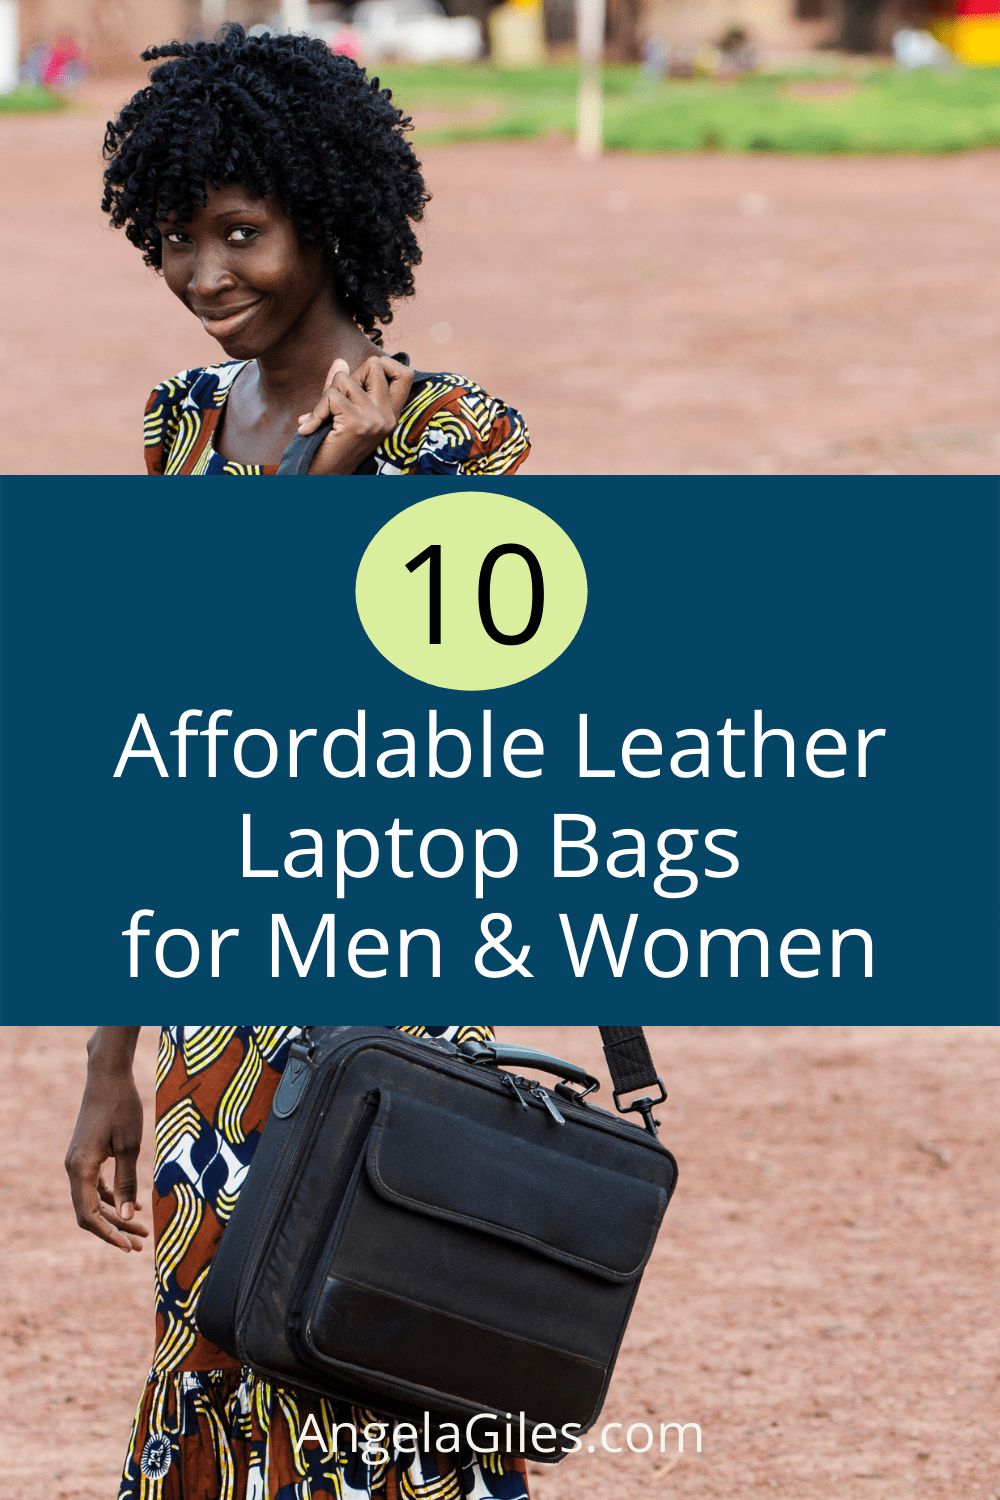 Top 10 Best Leather Laptop Bags for Men and Women